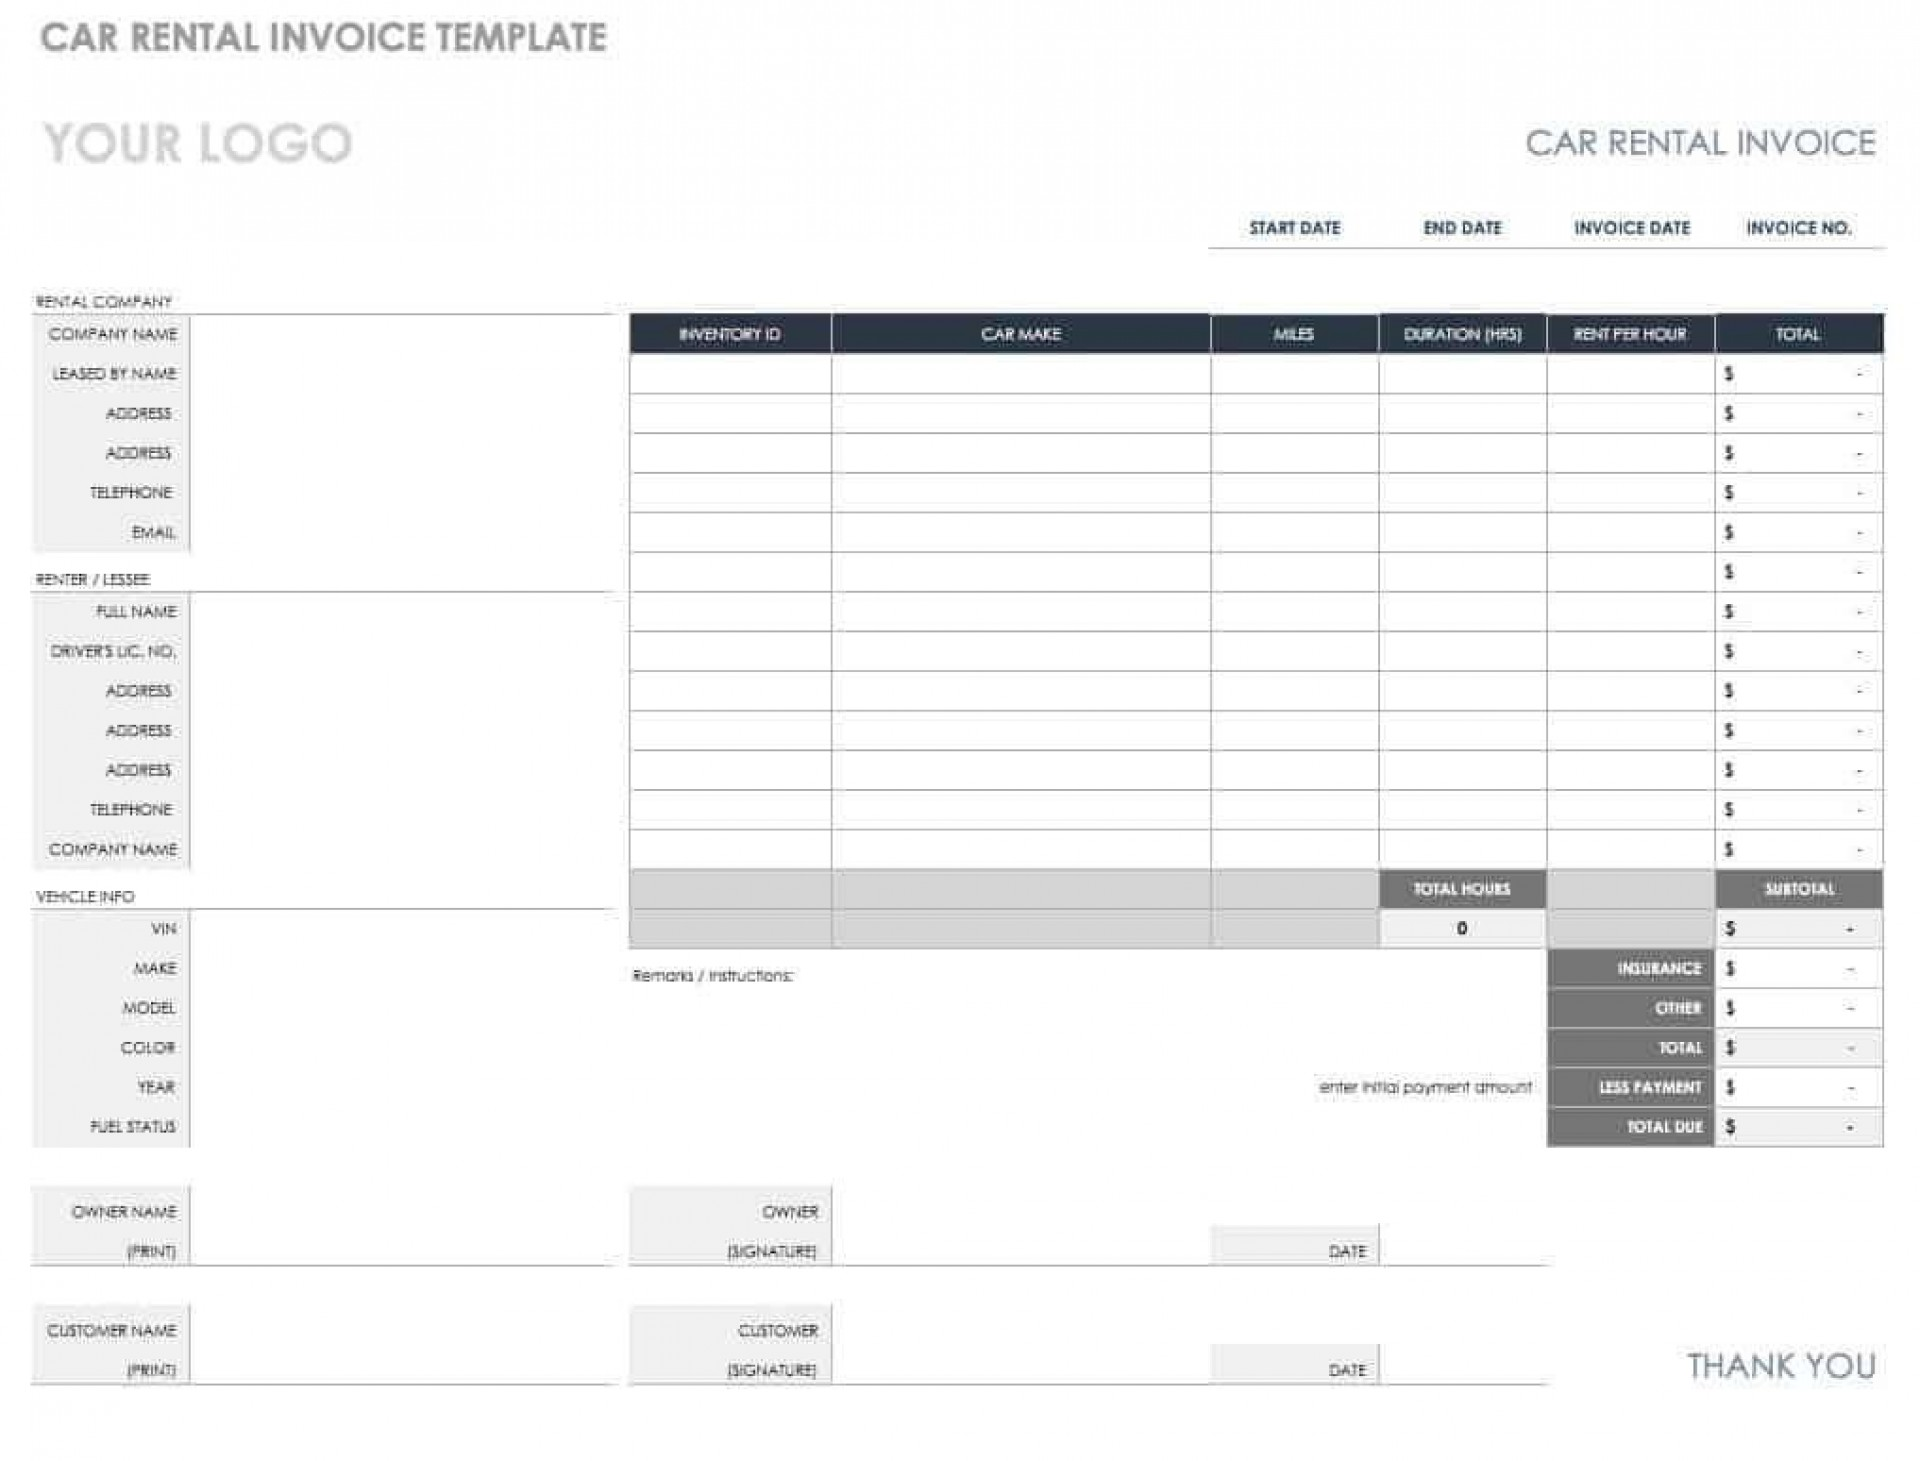 008 Formidable Microsoft Excel Auto Repair Invoice Template Picture 1920